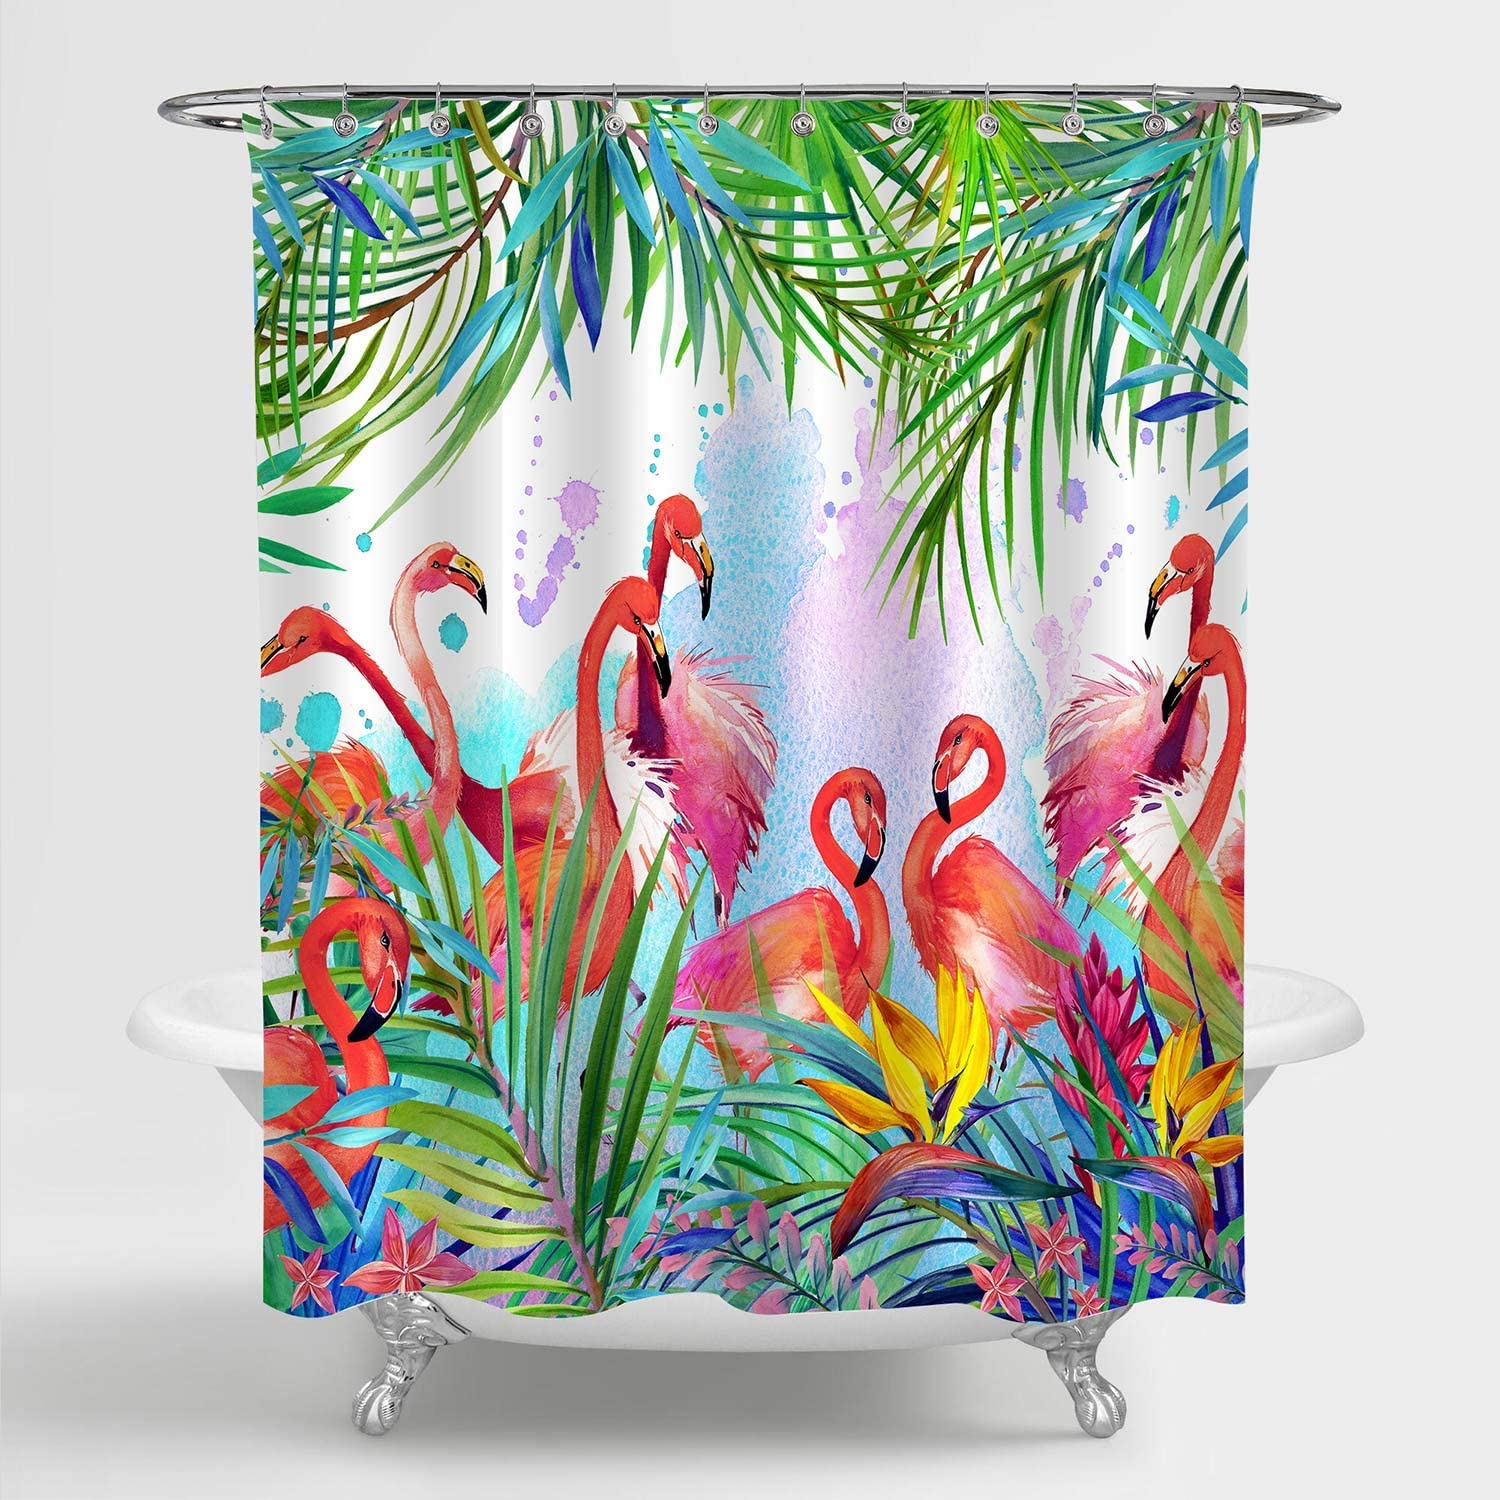 MitoVilla Pink Flamingo Shower Curtain, Exotic Bird with Tropical Jungle Leaves and Flowers Watercolor Bathroom Decor for Women and Girls, Washable Bathroom Accessories, Pink, Green